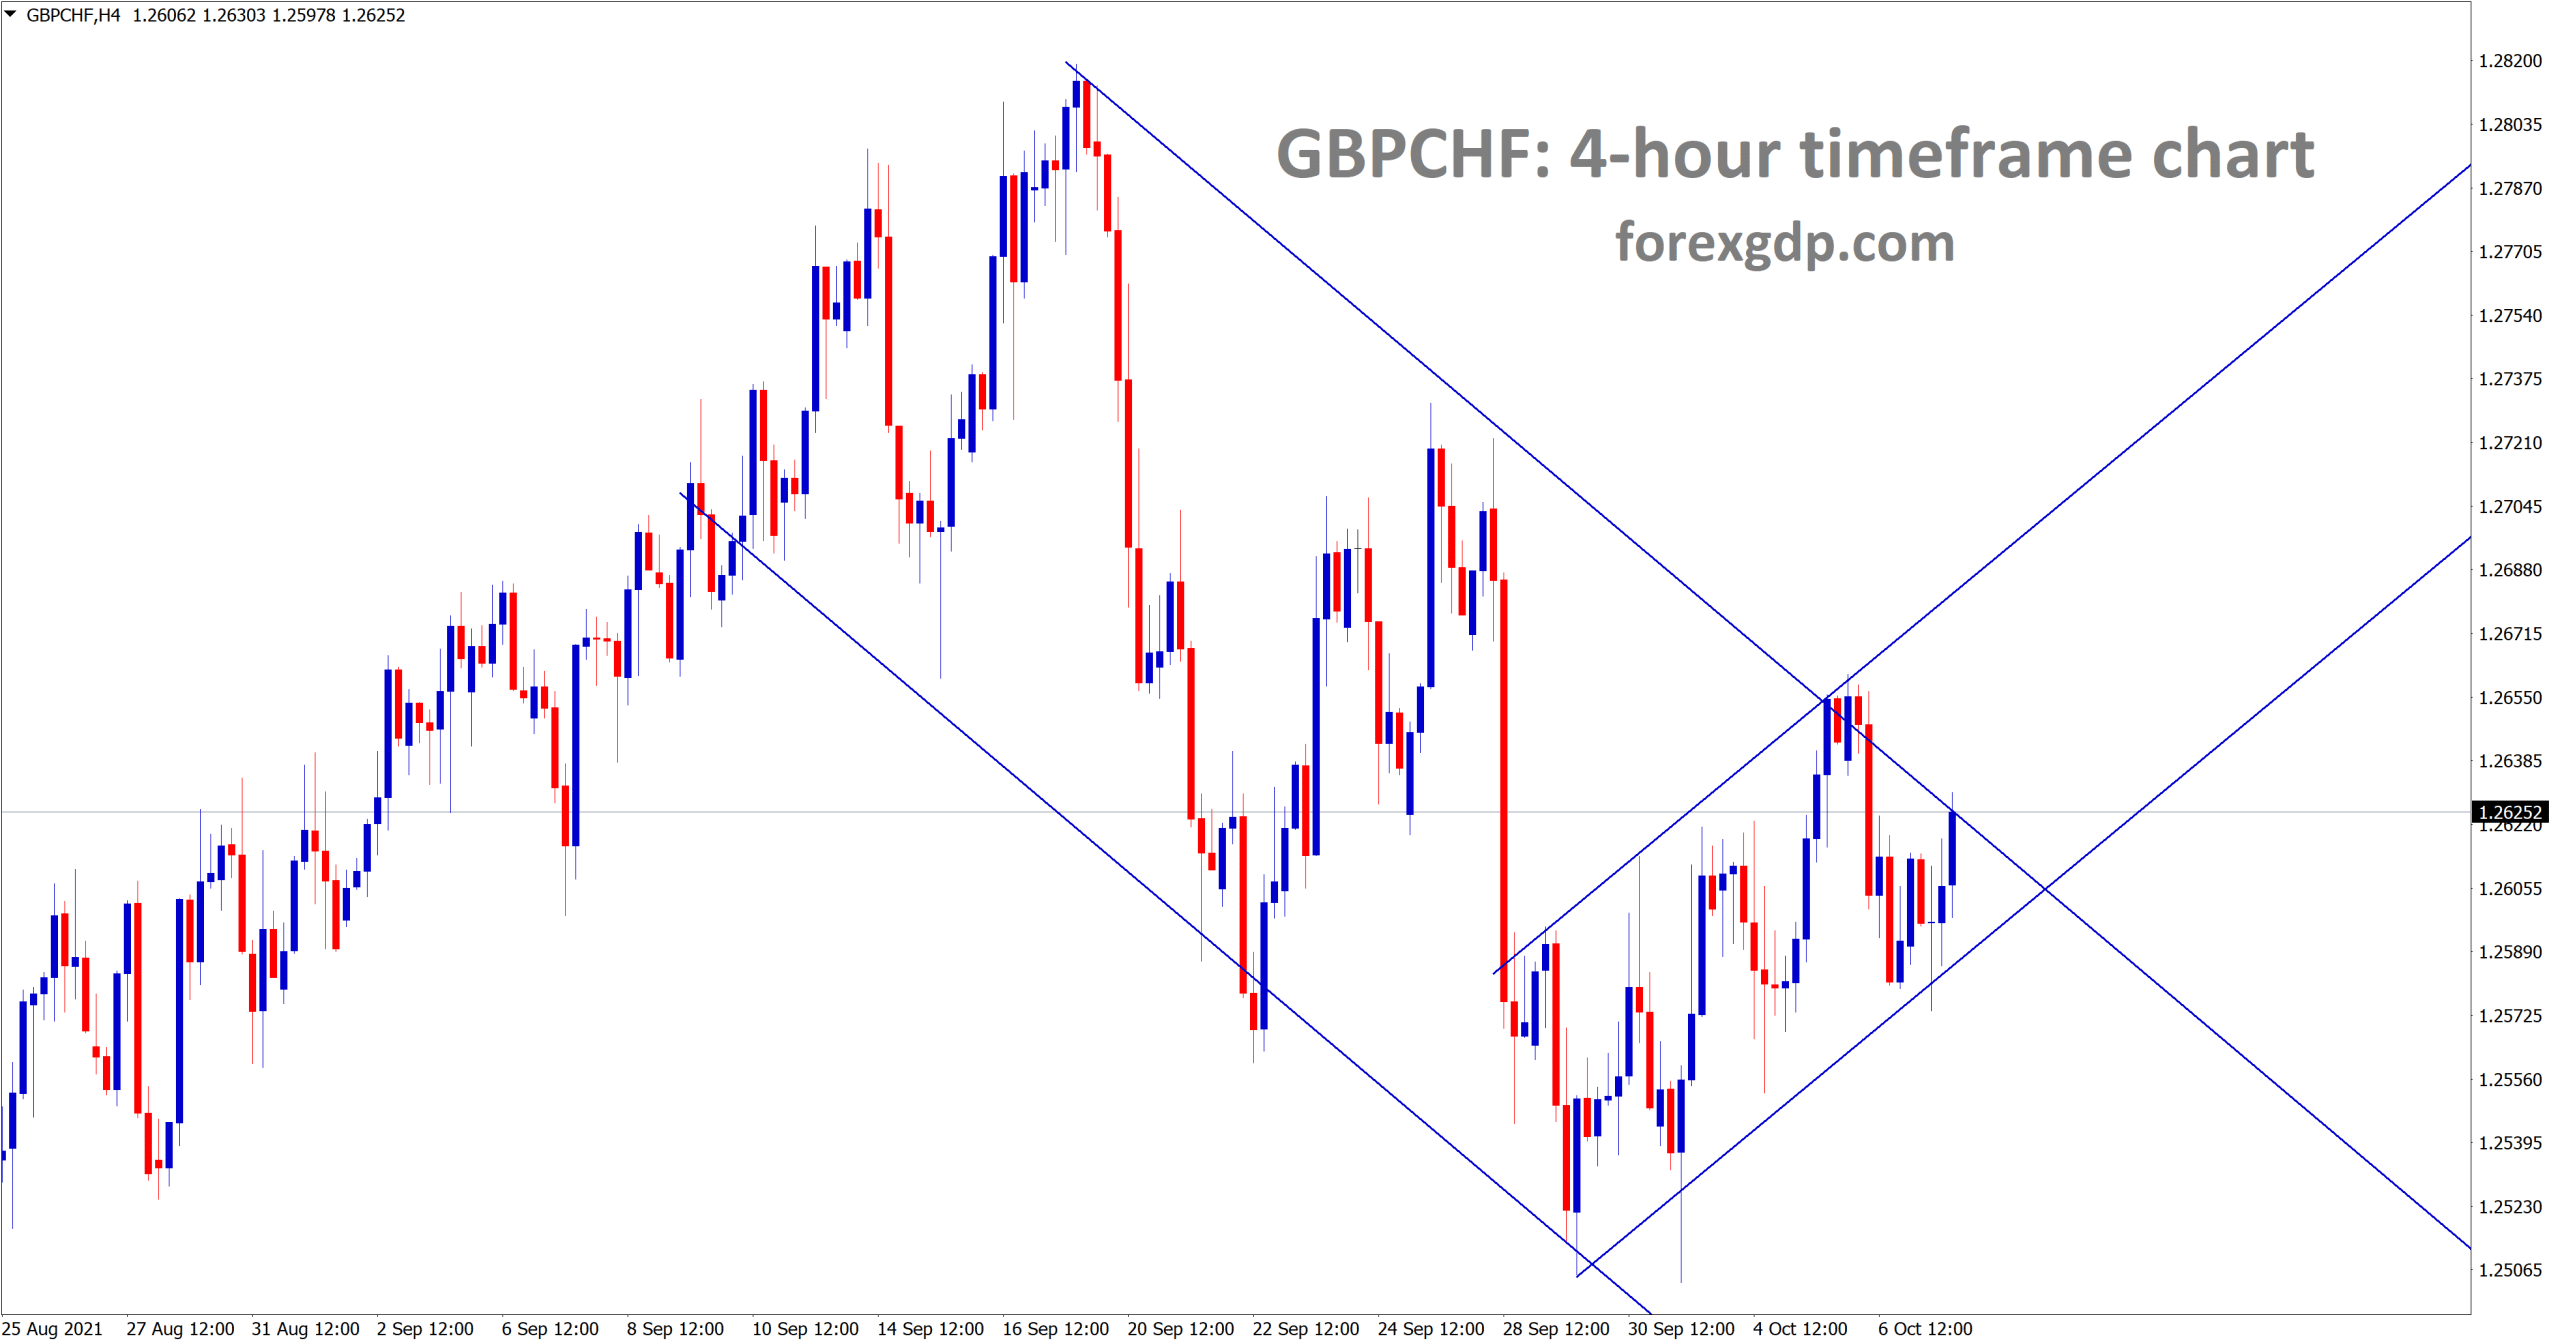 GBPCHF is moving between the channel ranges